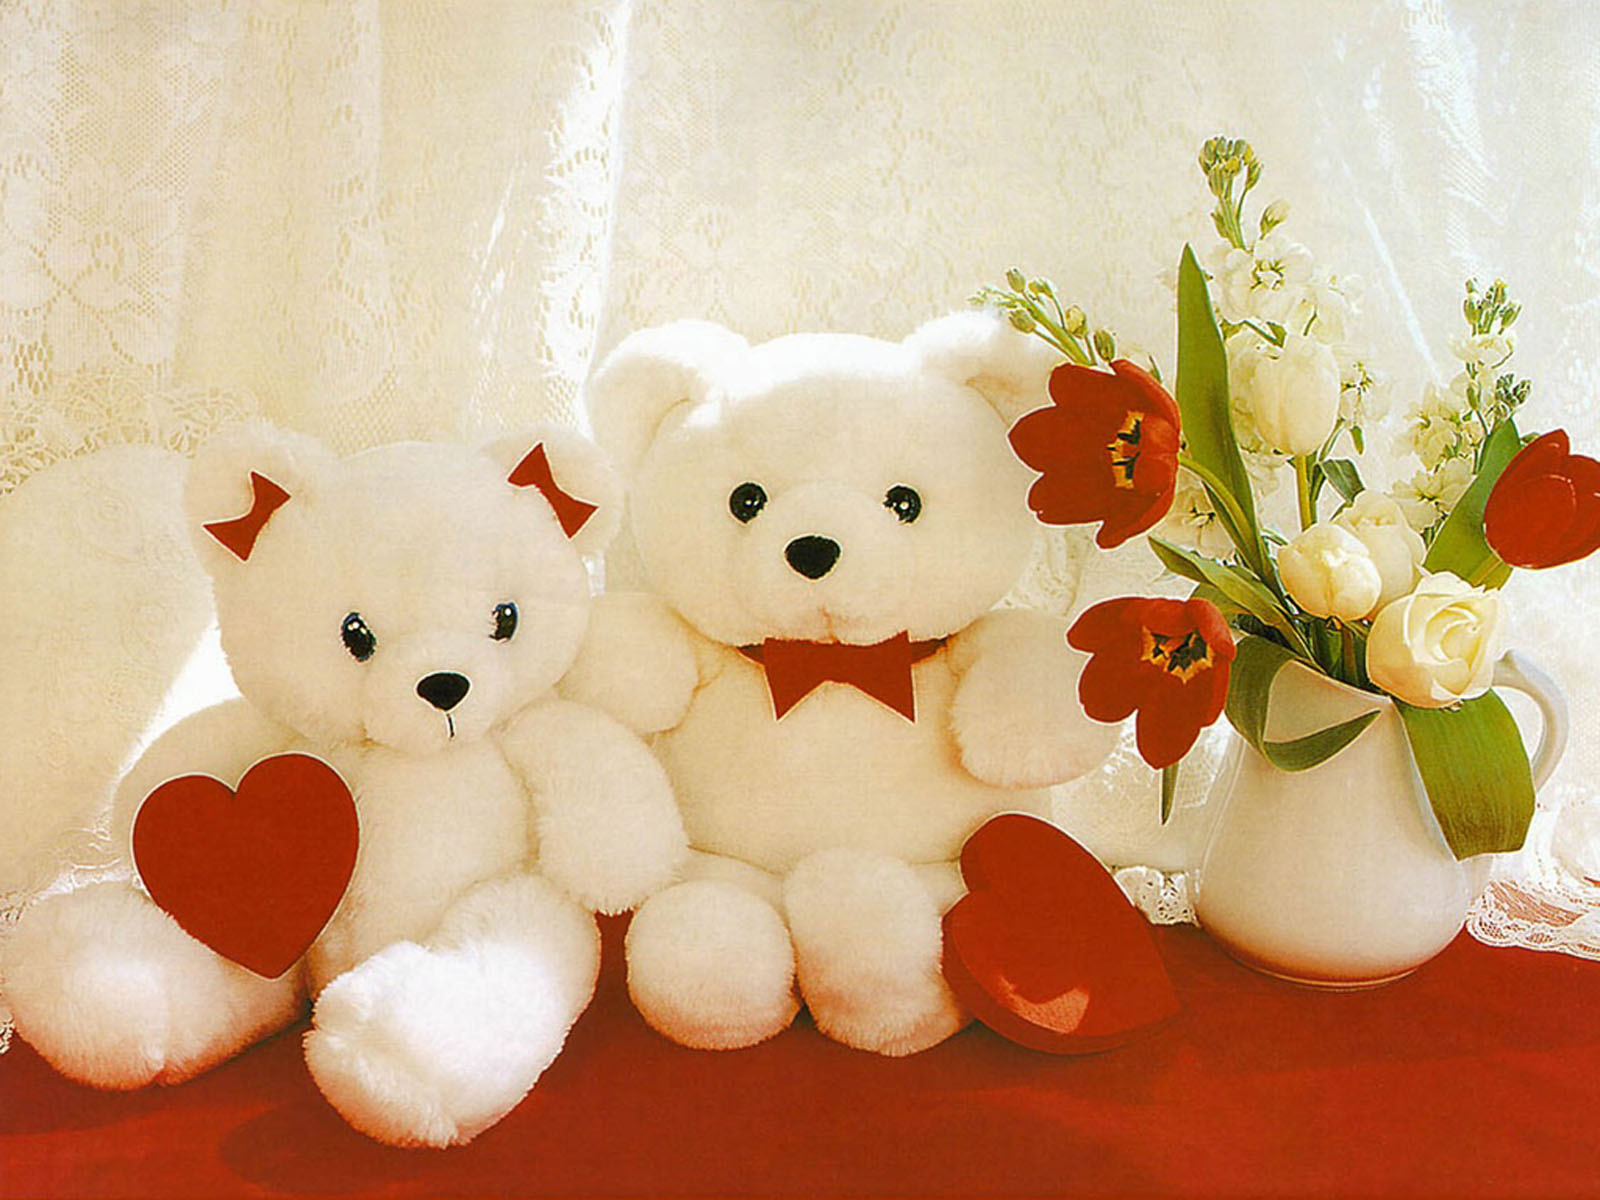 Cute Cartoon Bears With Hearts Cute teddy bear hd wallpapers